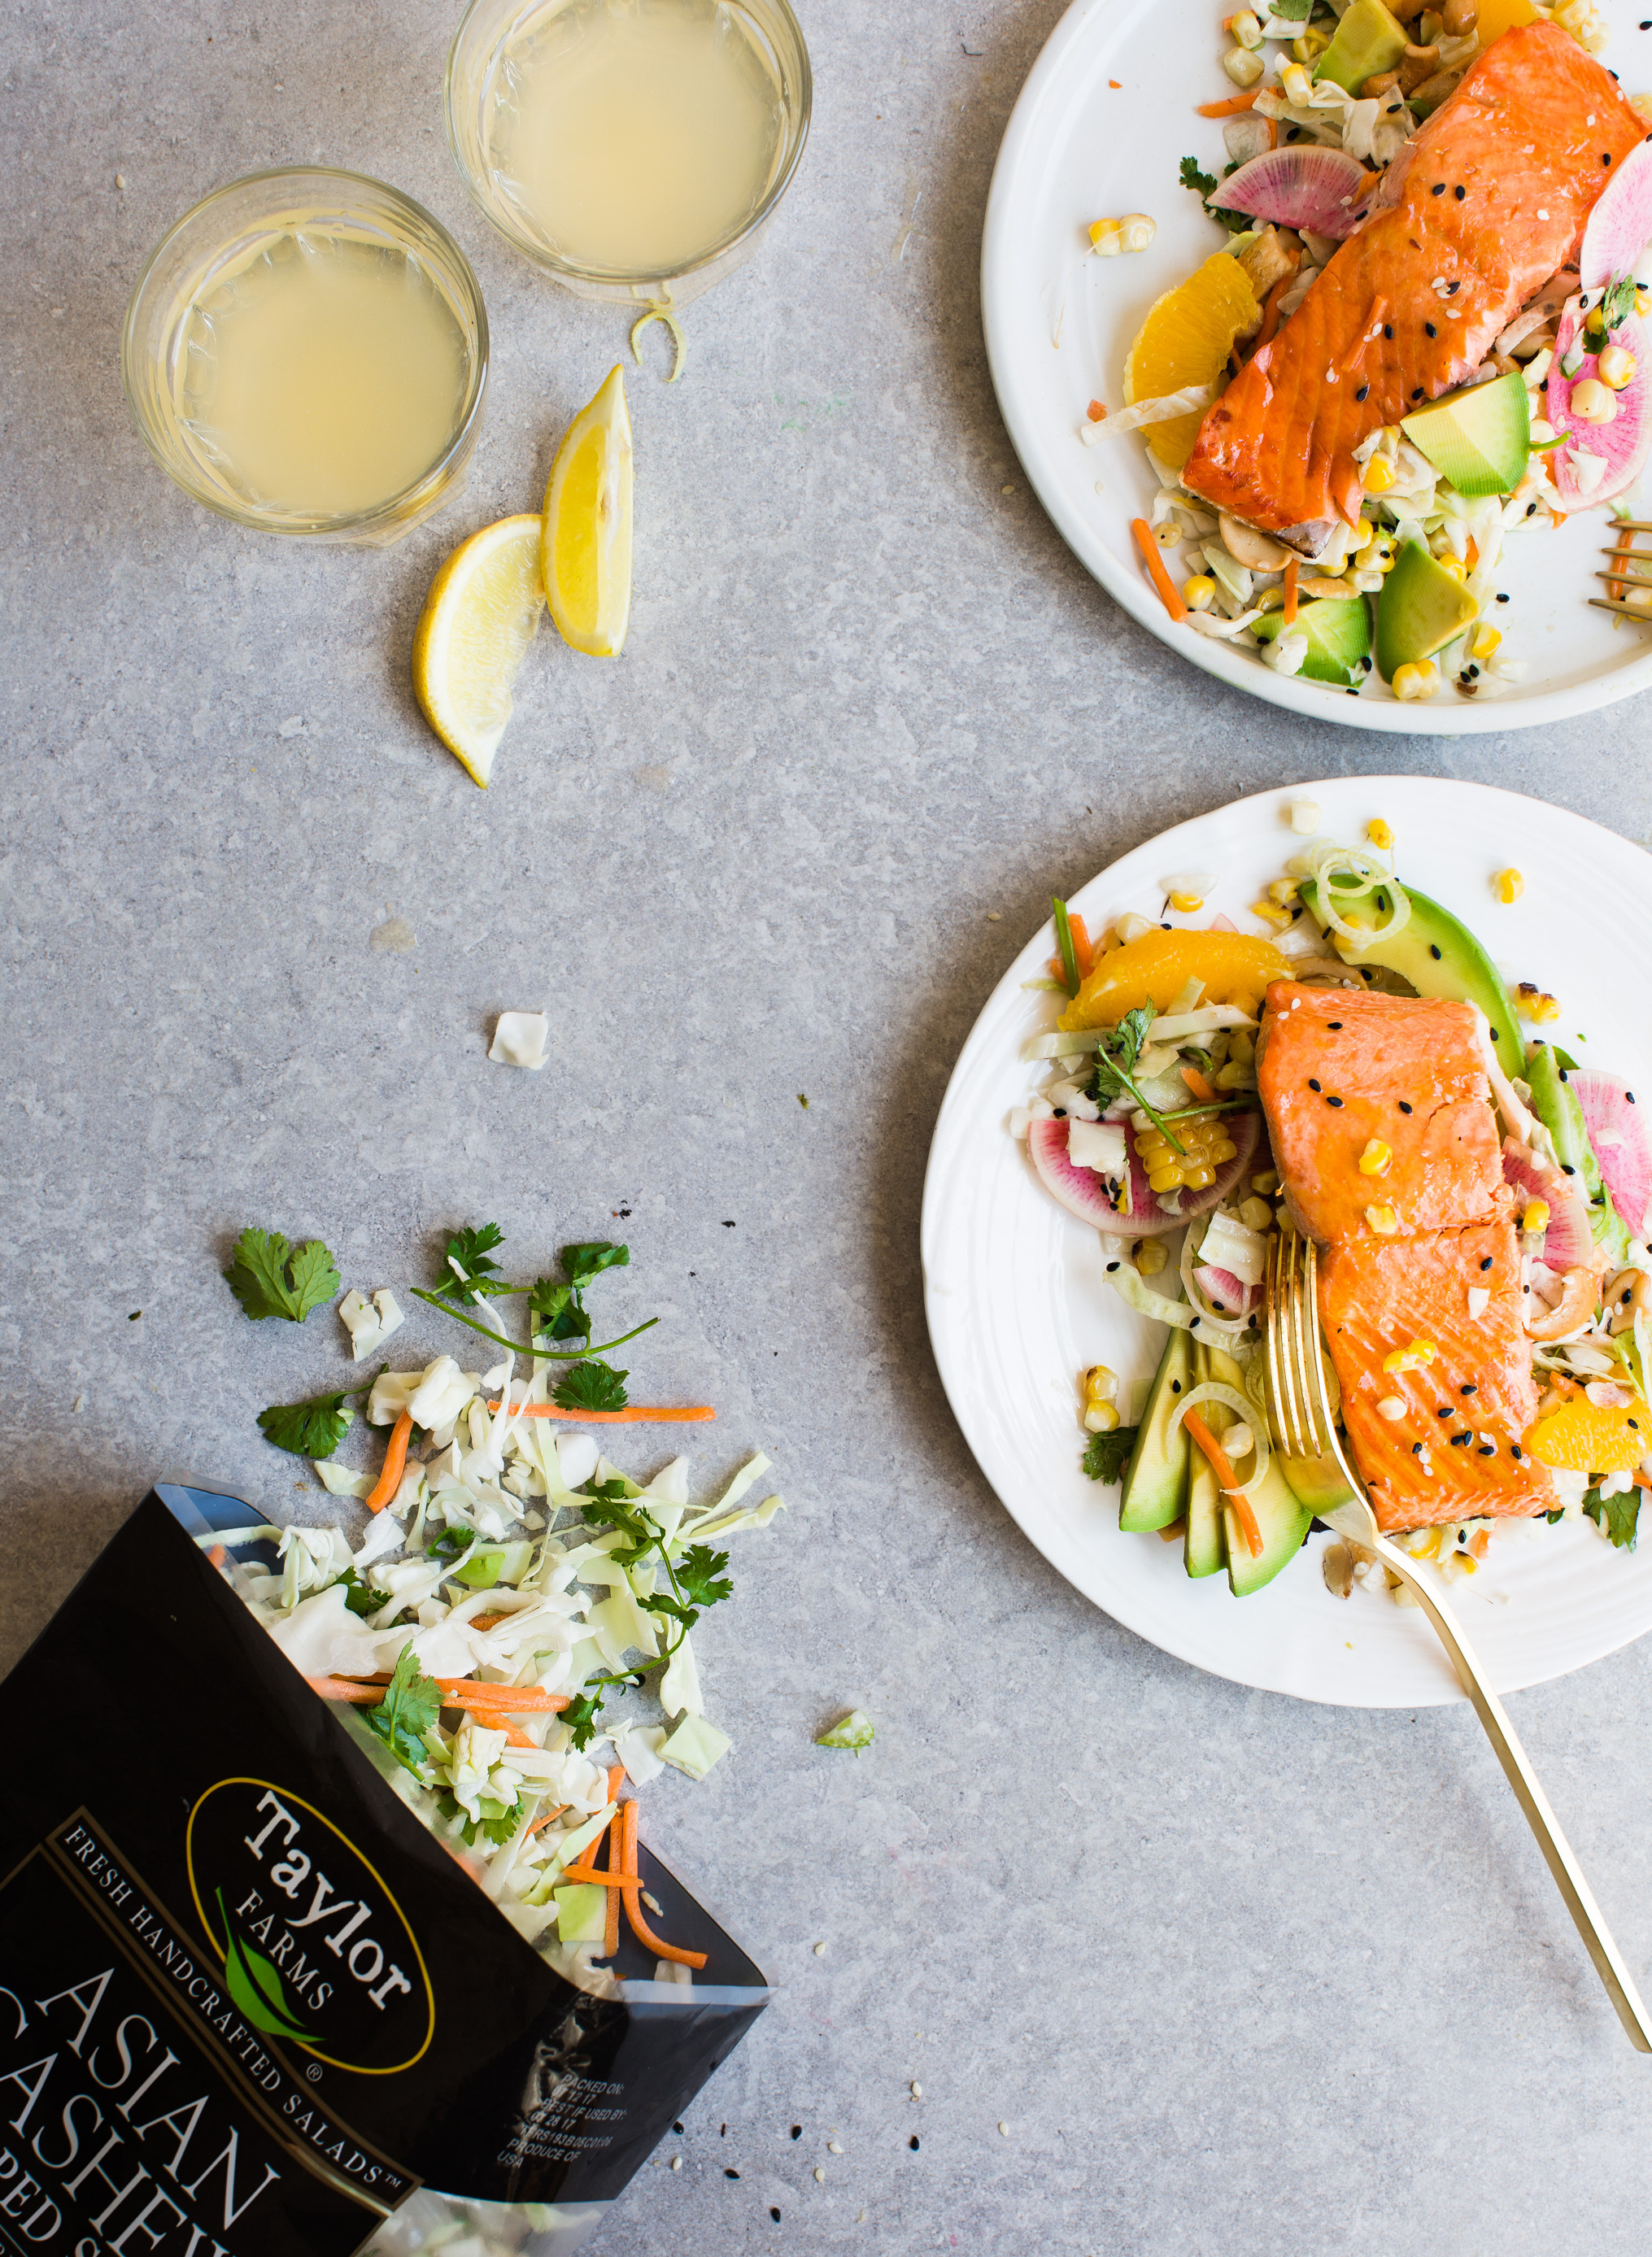 12-Taylor-Farms-Salmon-Salad.jpg